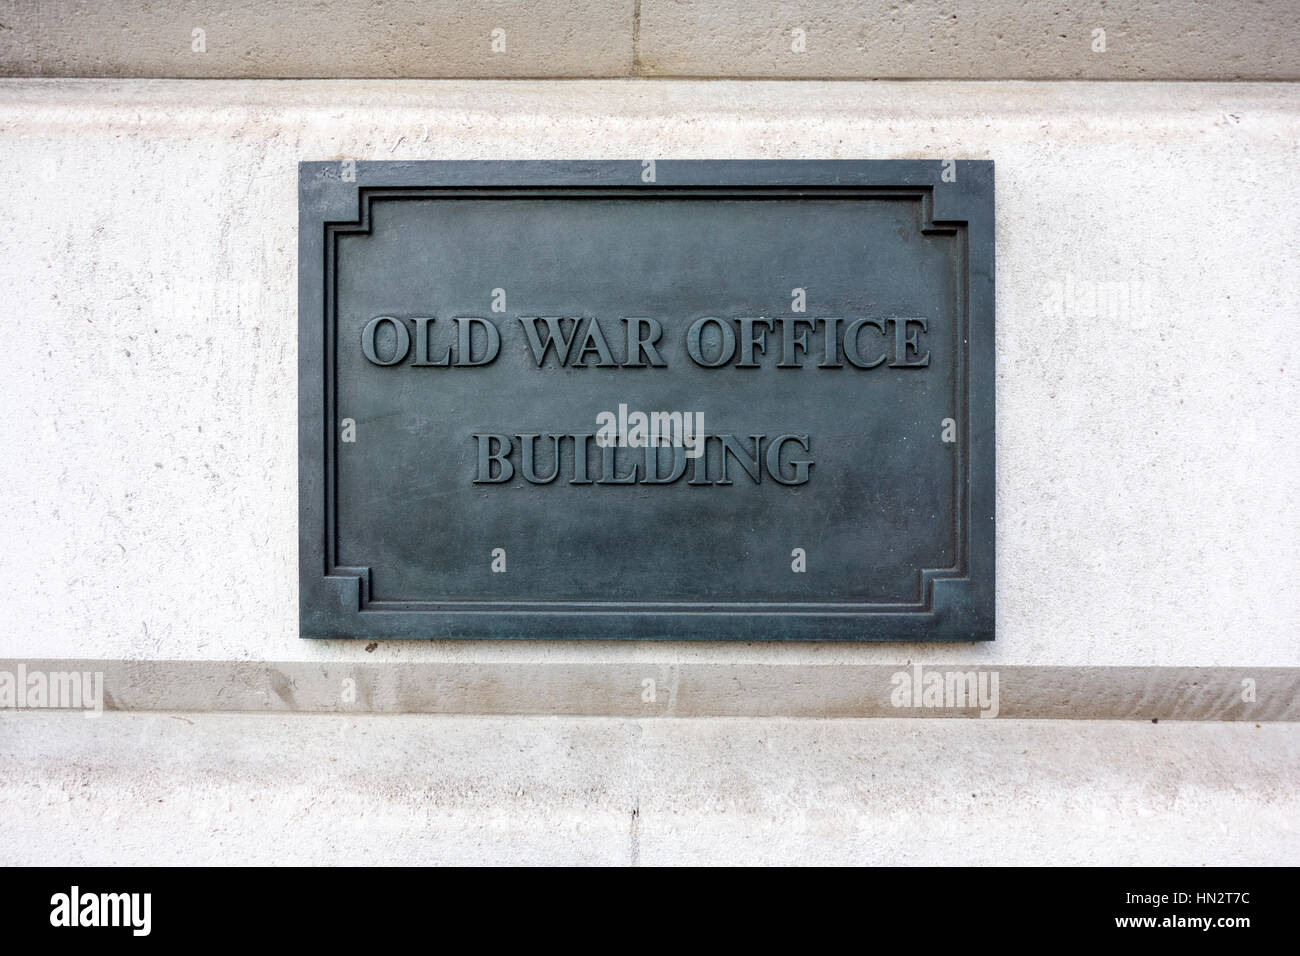 Old war office building sign, London, UK - Stock Image